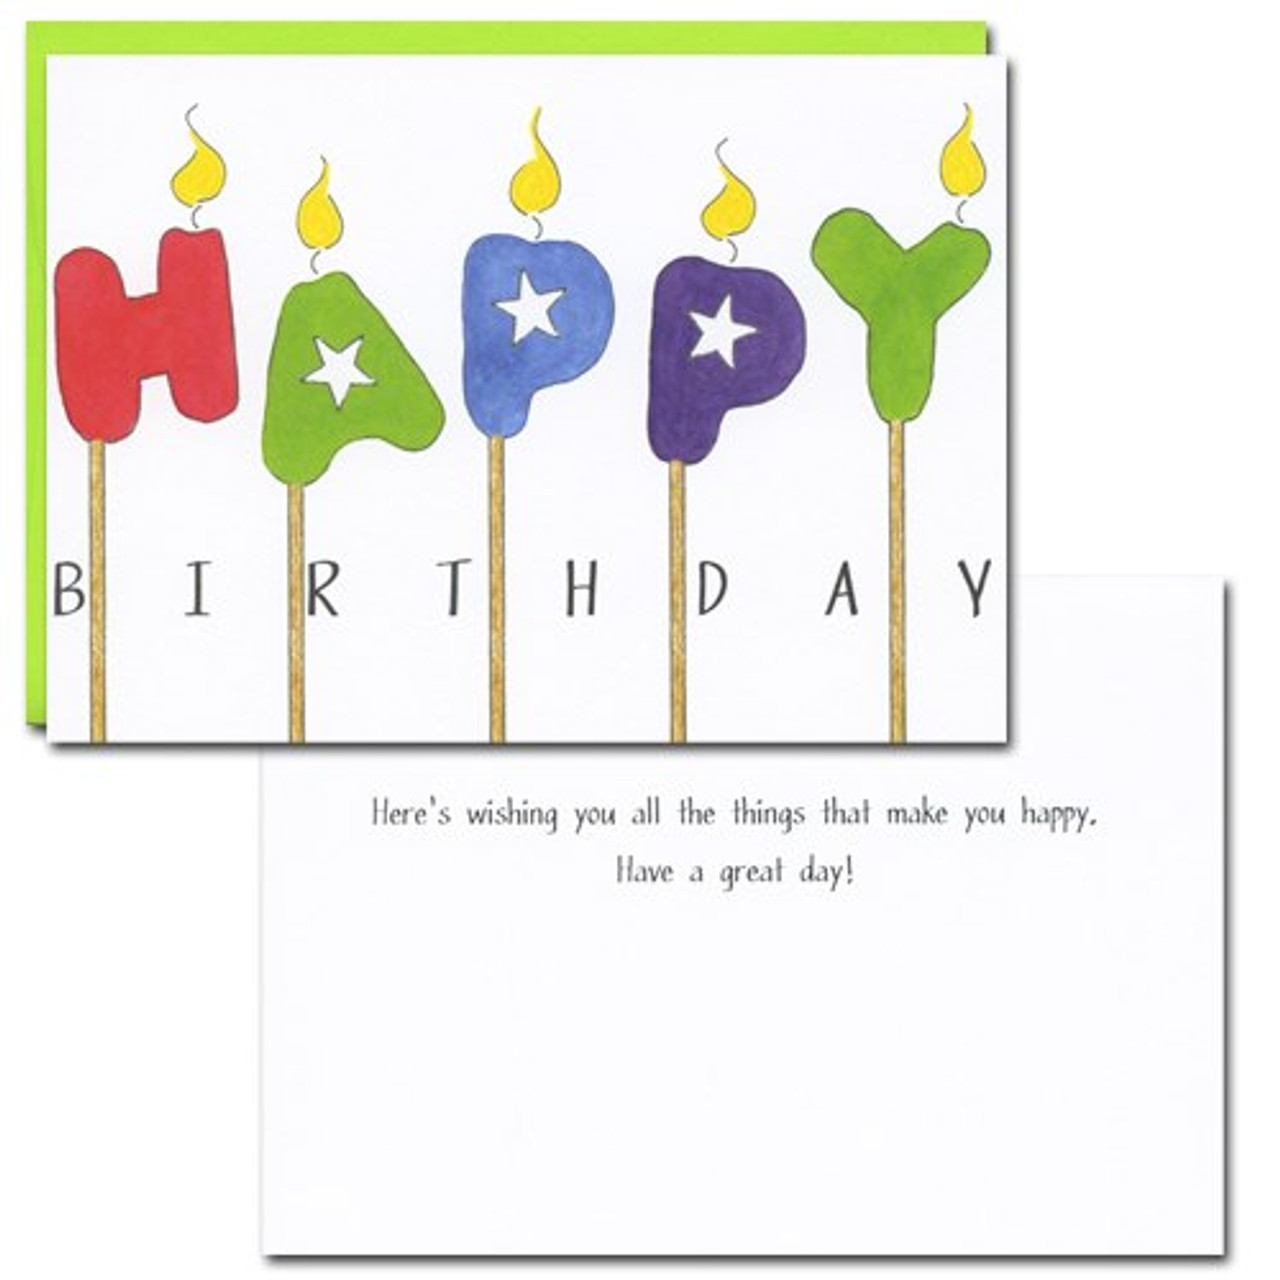 Happy Candles Birthday Card. Inside reads: Here's wishing you all the things that make you happy. Have a great day!